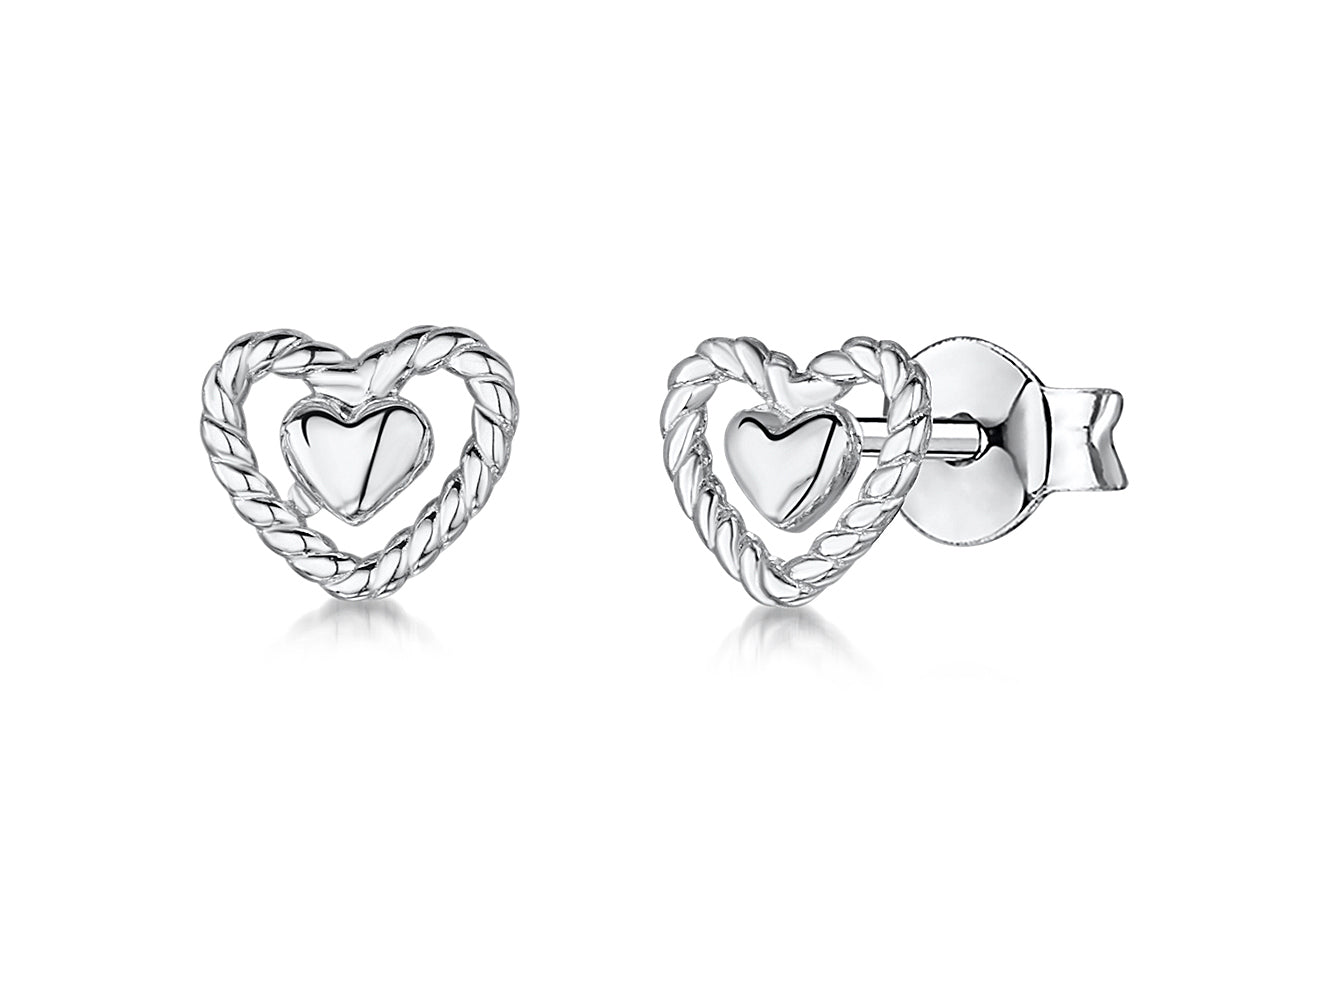 Sterling Silver Plain Open Heart Stud Earrings With A Woven Heart Surround Finish - JOOLS By Jenny Brown